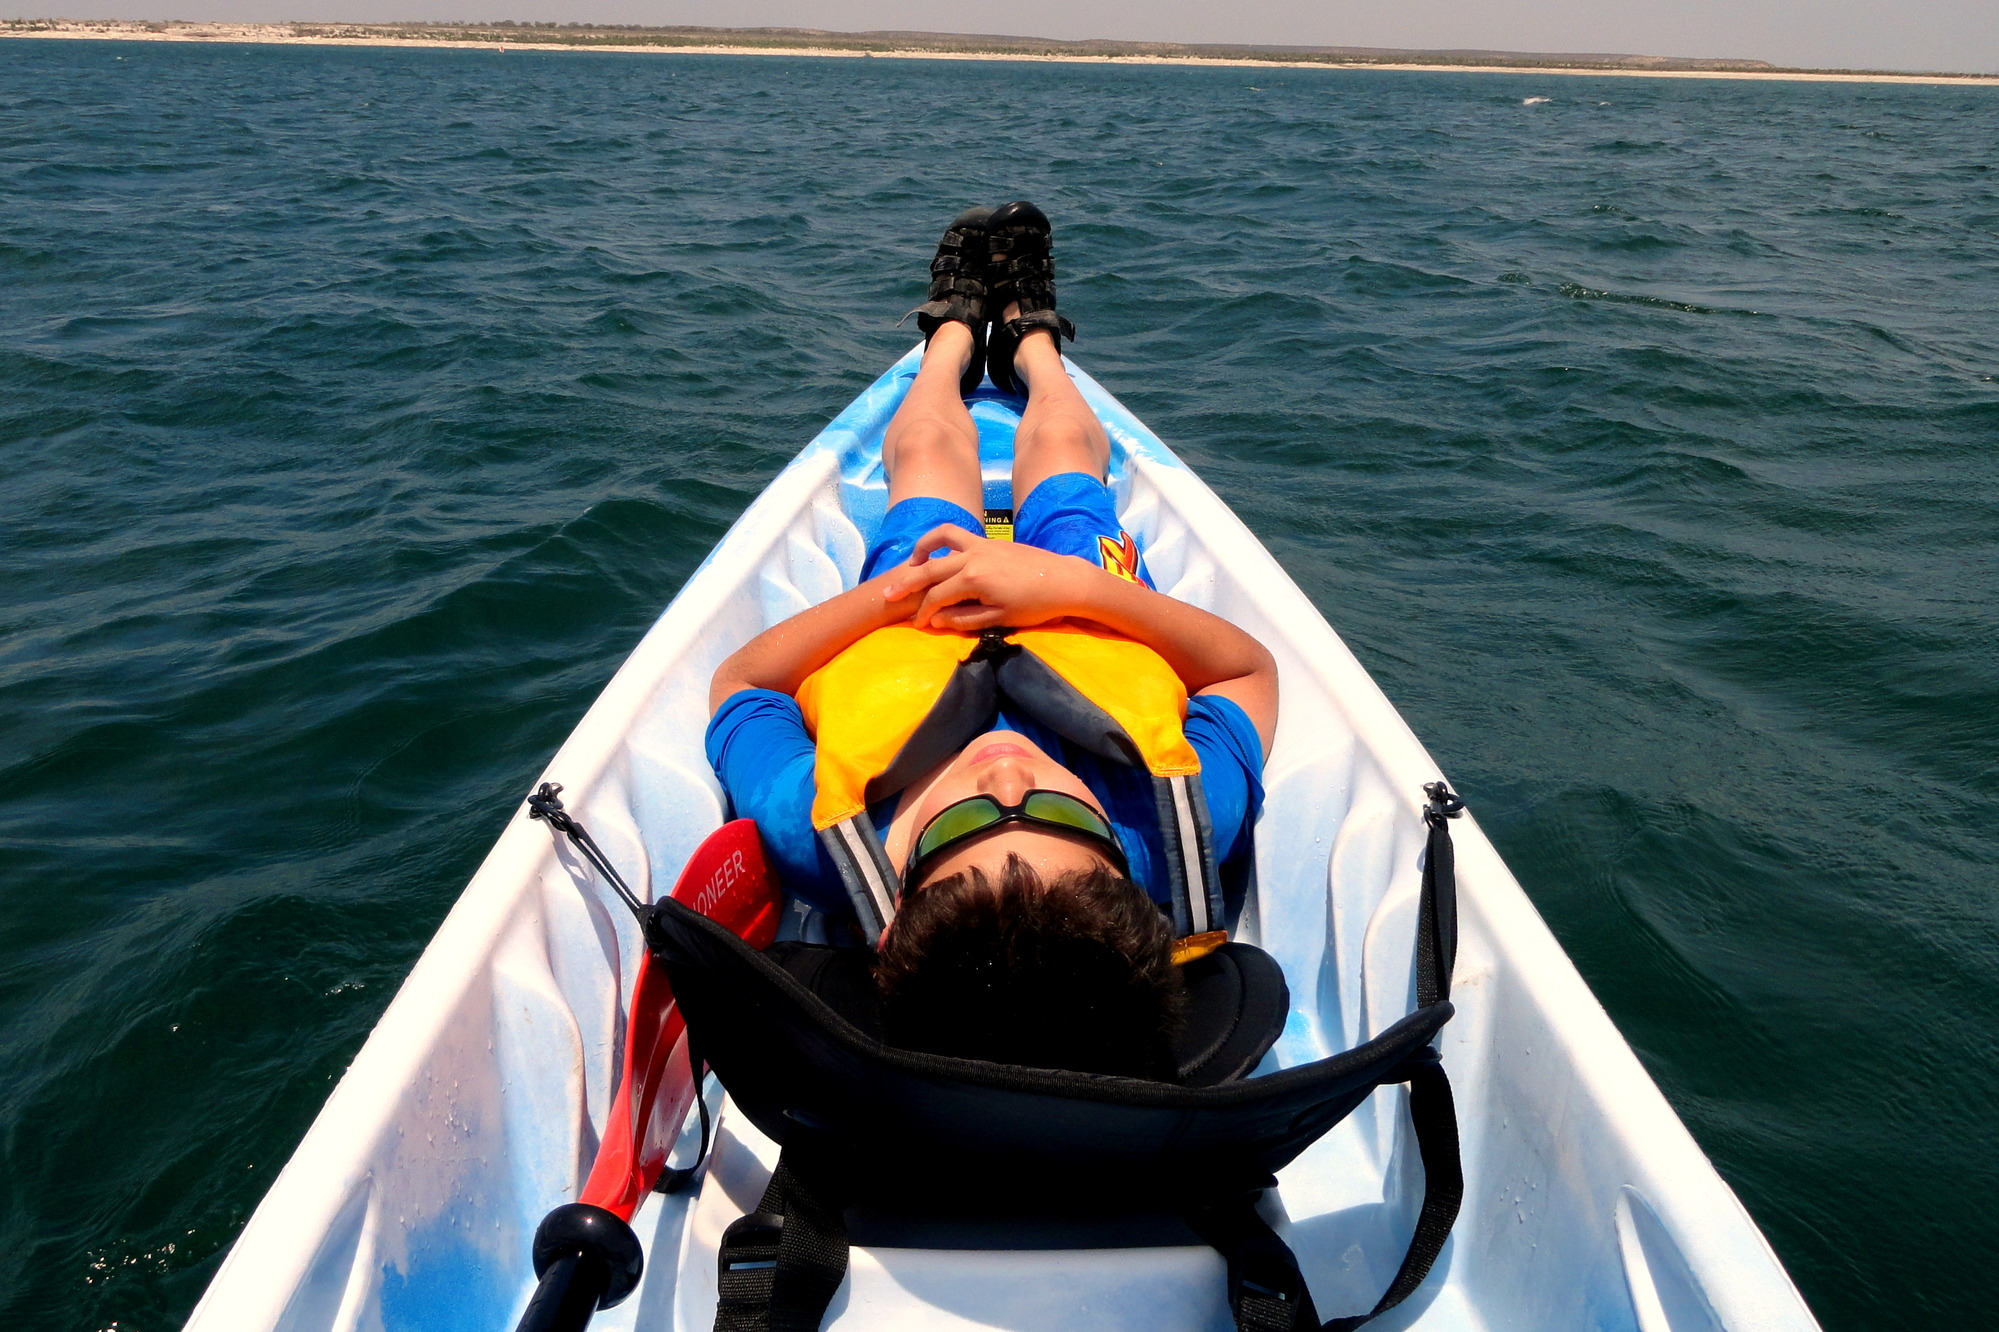 A paddler lies prone in his vessel